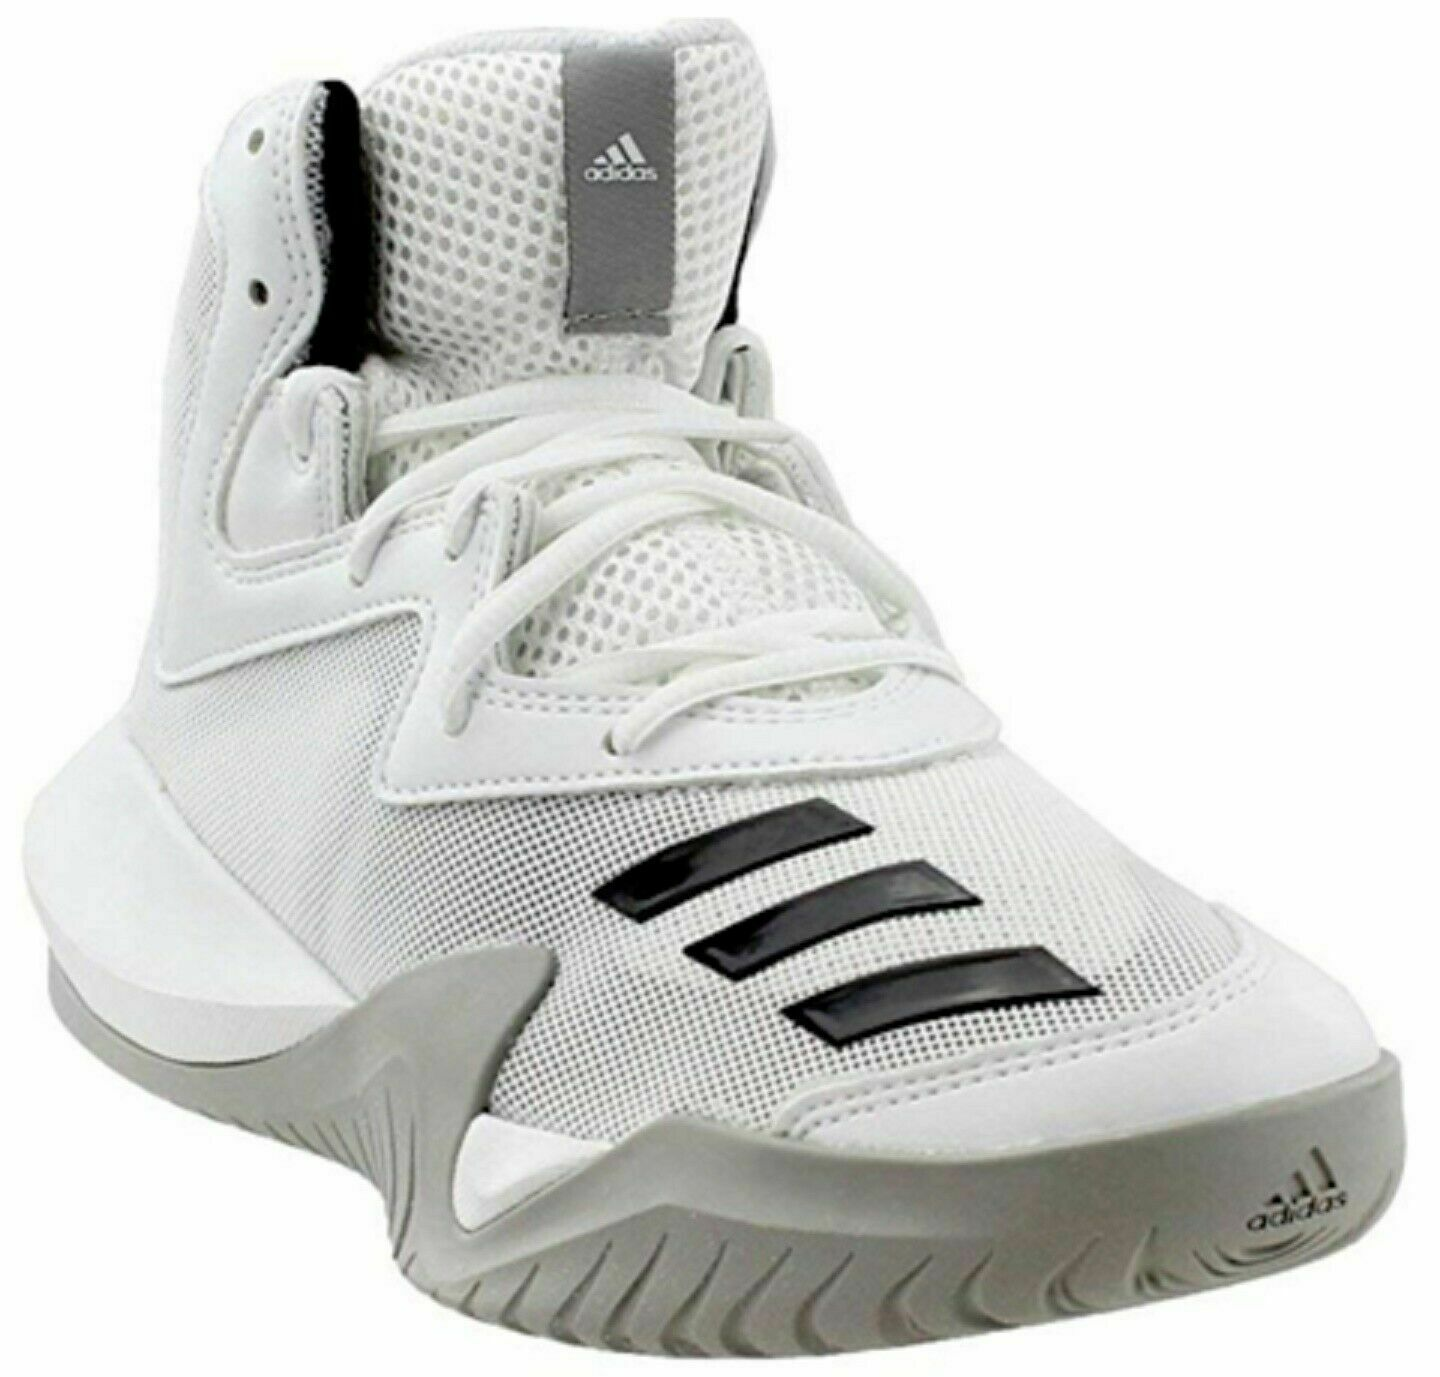 f4599a28bd867 Adidas Men BY3927 BY3927 BY3927 Crazy Team Hi Basketball shoes White Black  Size 9 1 2